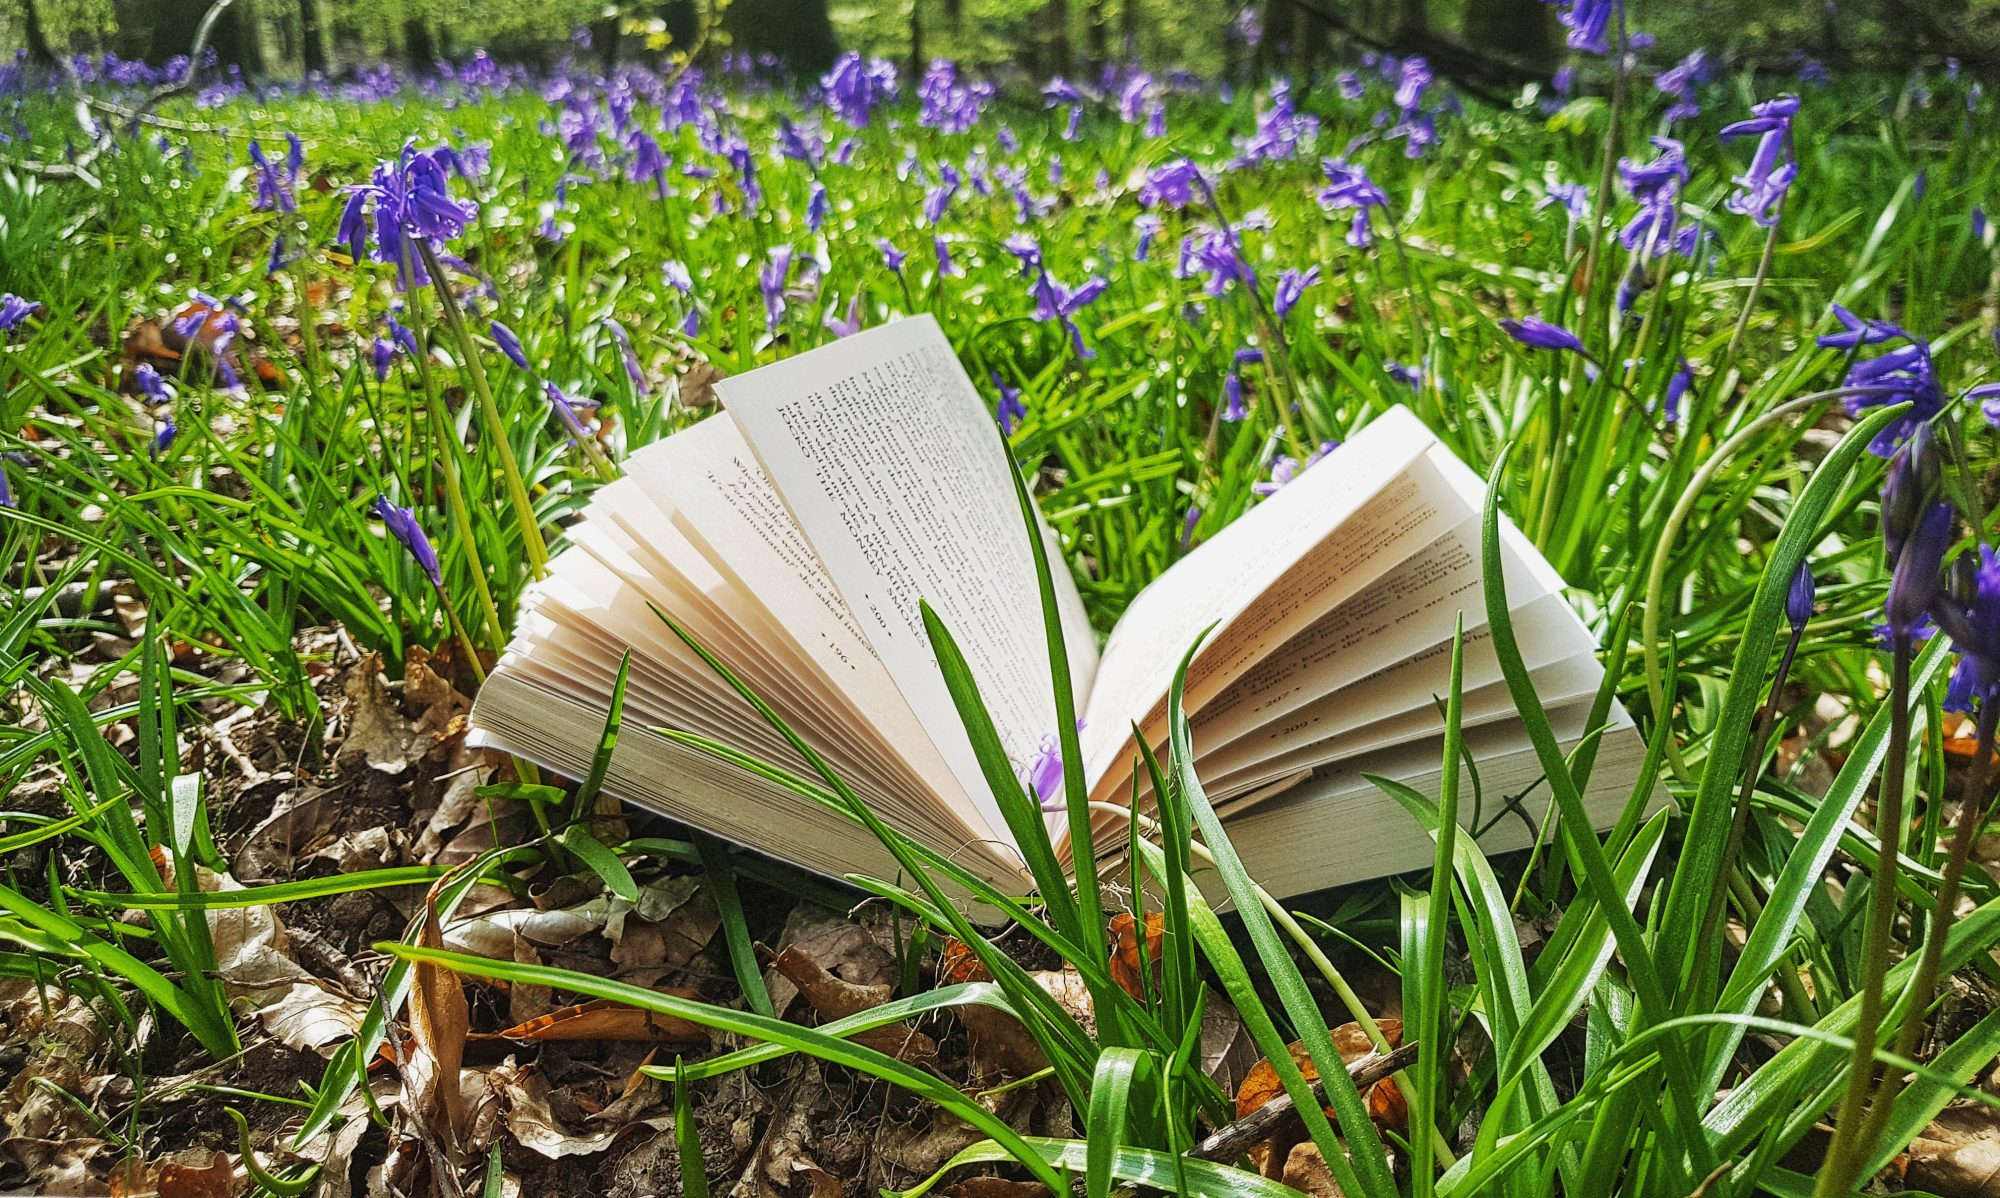 Books By The Woods